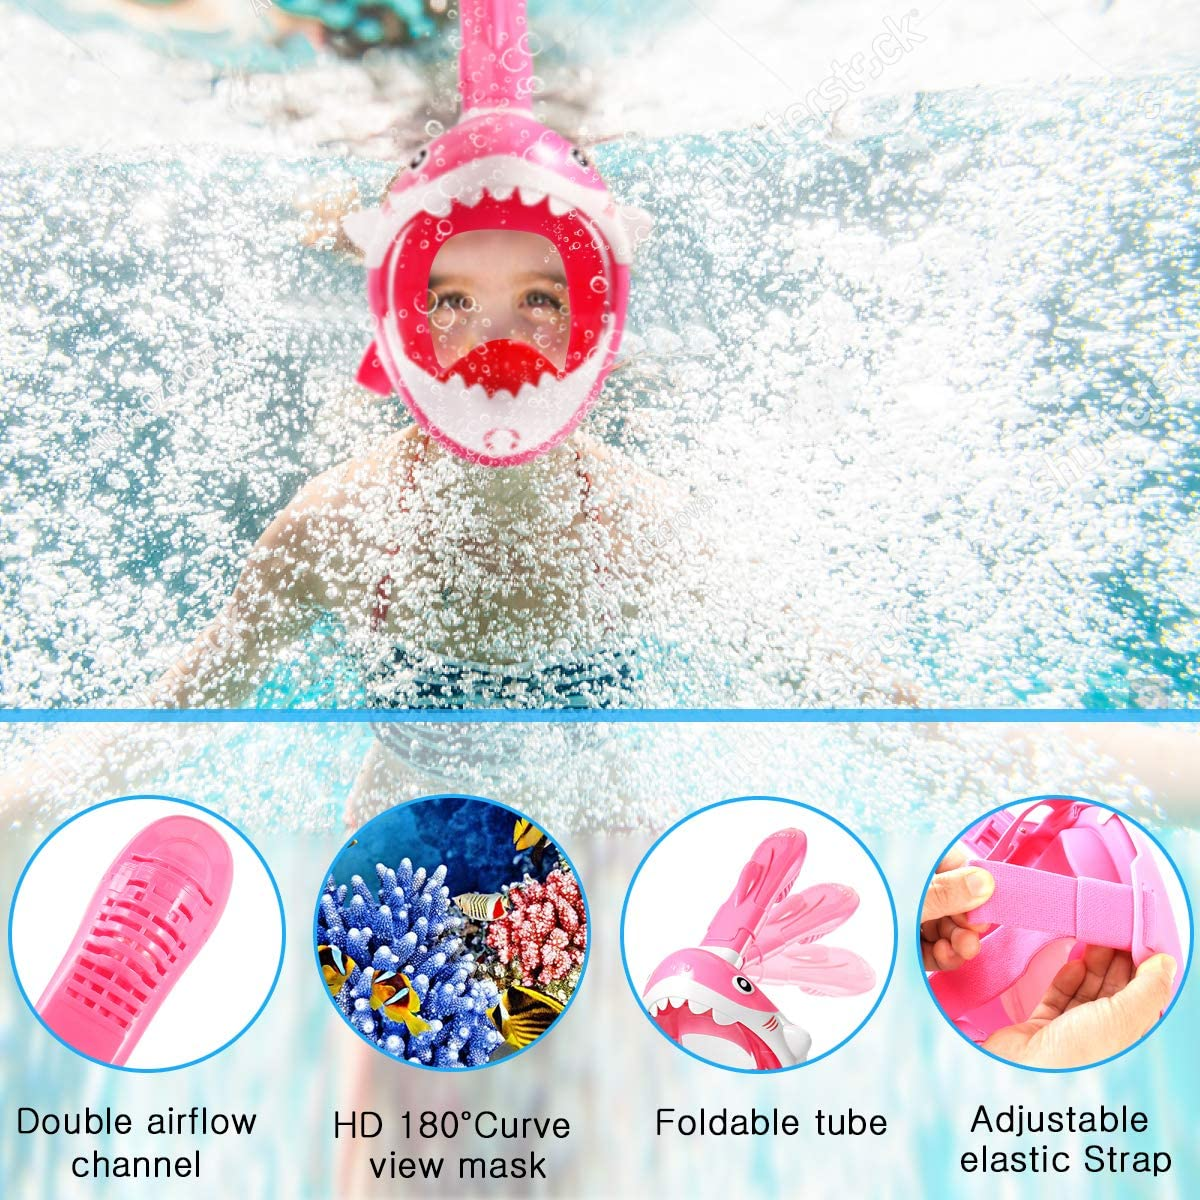 Frebw Safety Adult Children Snorkeling Face Mask Foldable 180 Degree Panoramic Anti-Fog Anti-Leak Free Breathing Snorkel Mask with Camera Mount Adopted Latest Dry Top System